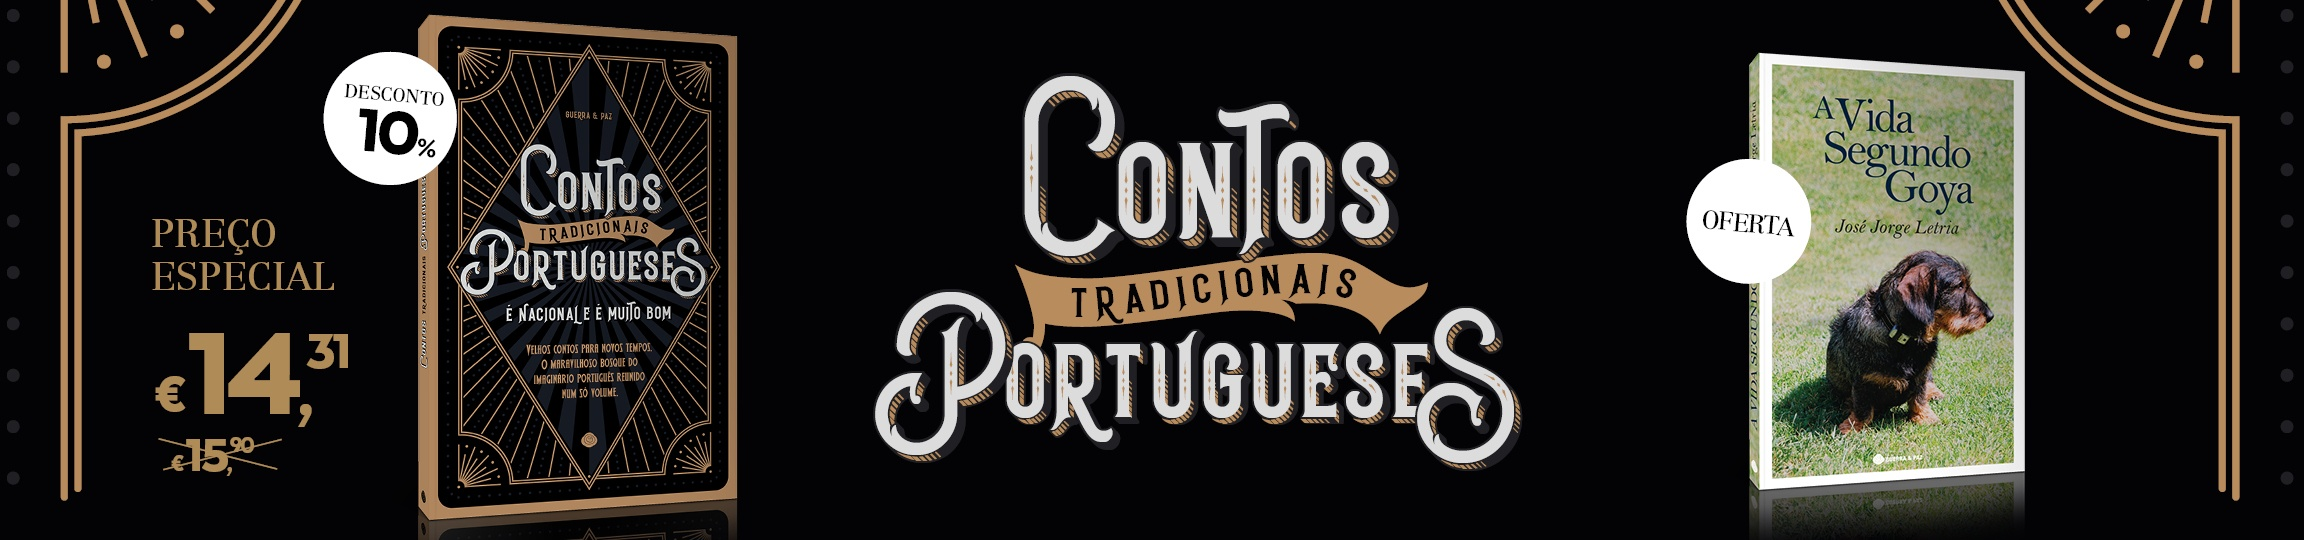 https://www.guerraepaz.pt/inicio/480-contos-tradicionais-portugueses.html?search_query=CONTOS&results=2